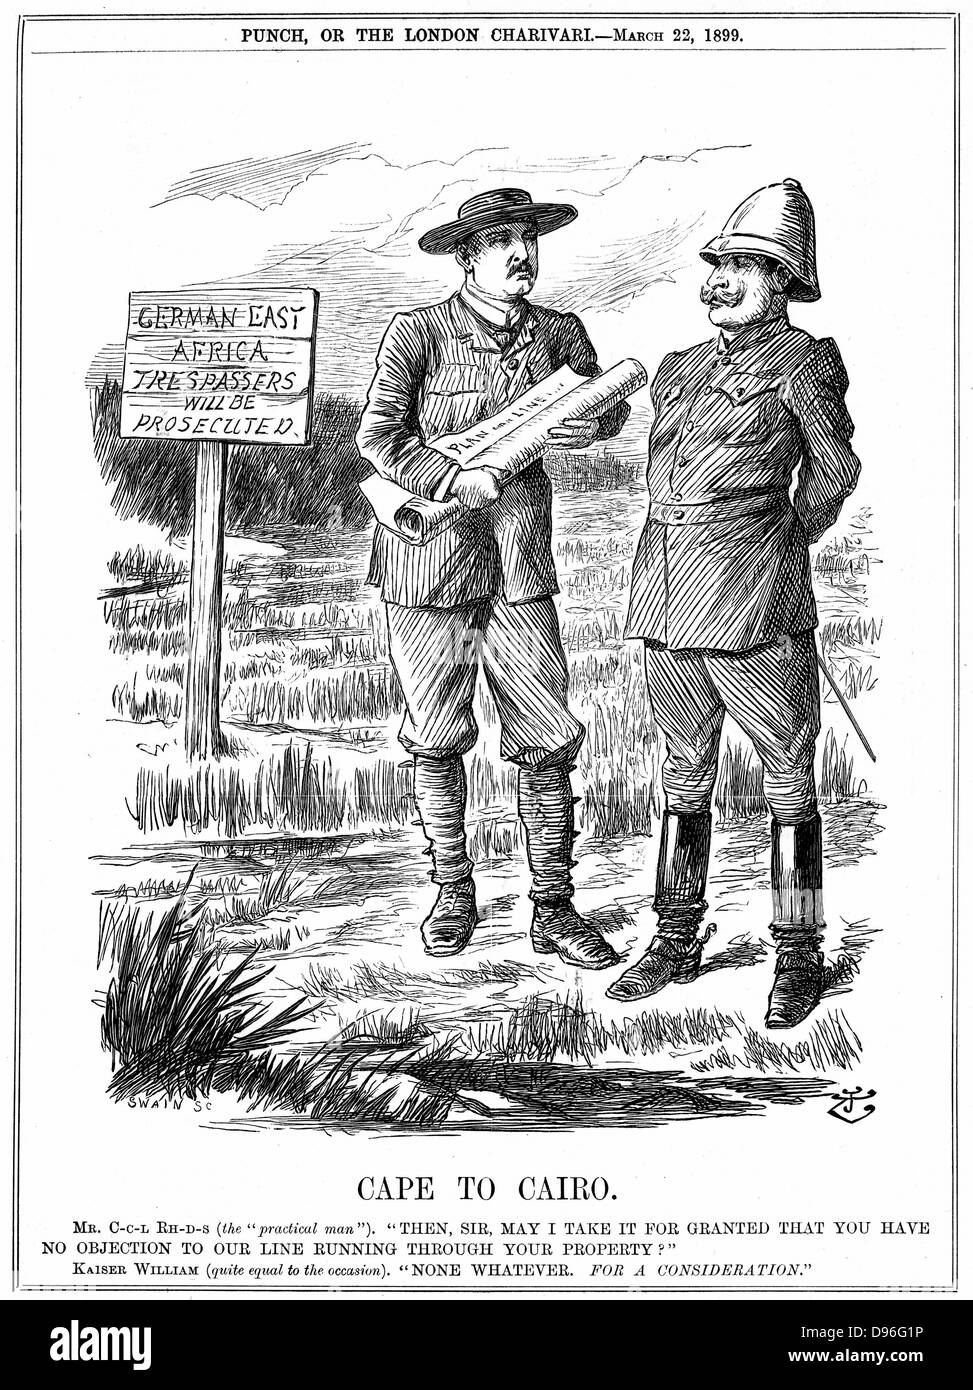 Cecil John Rhodes (1852-1902) English-born South African statesman, asking the German emperor for permission to - Stock Image